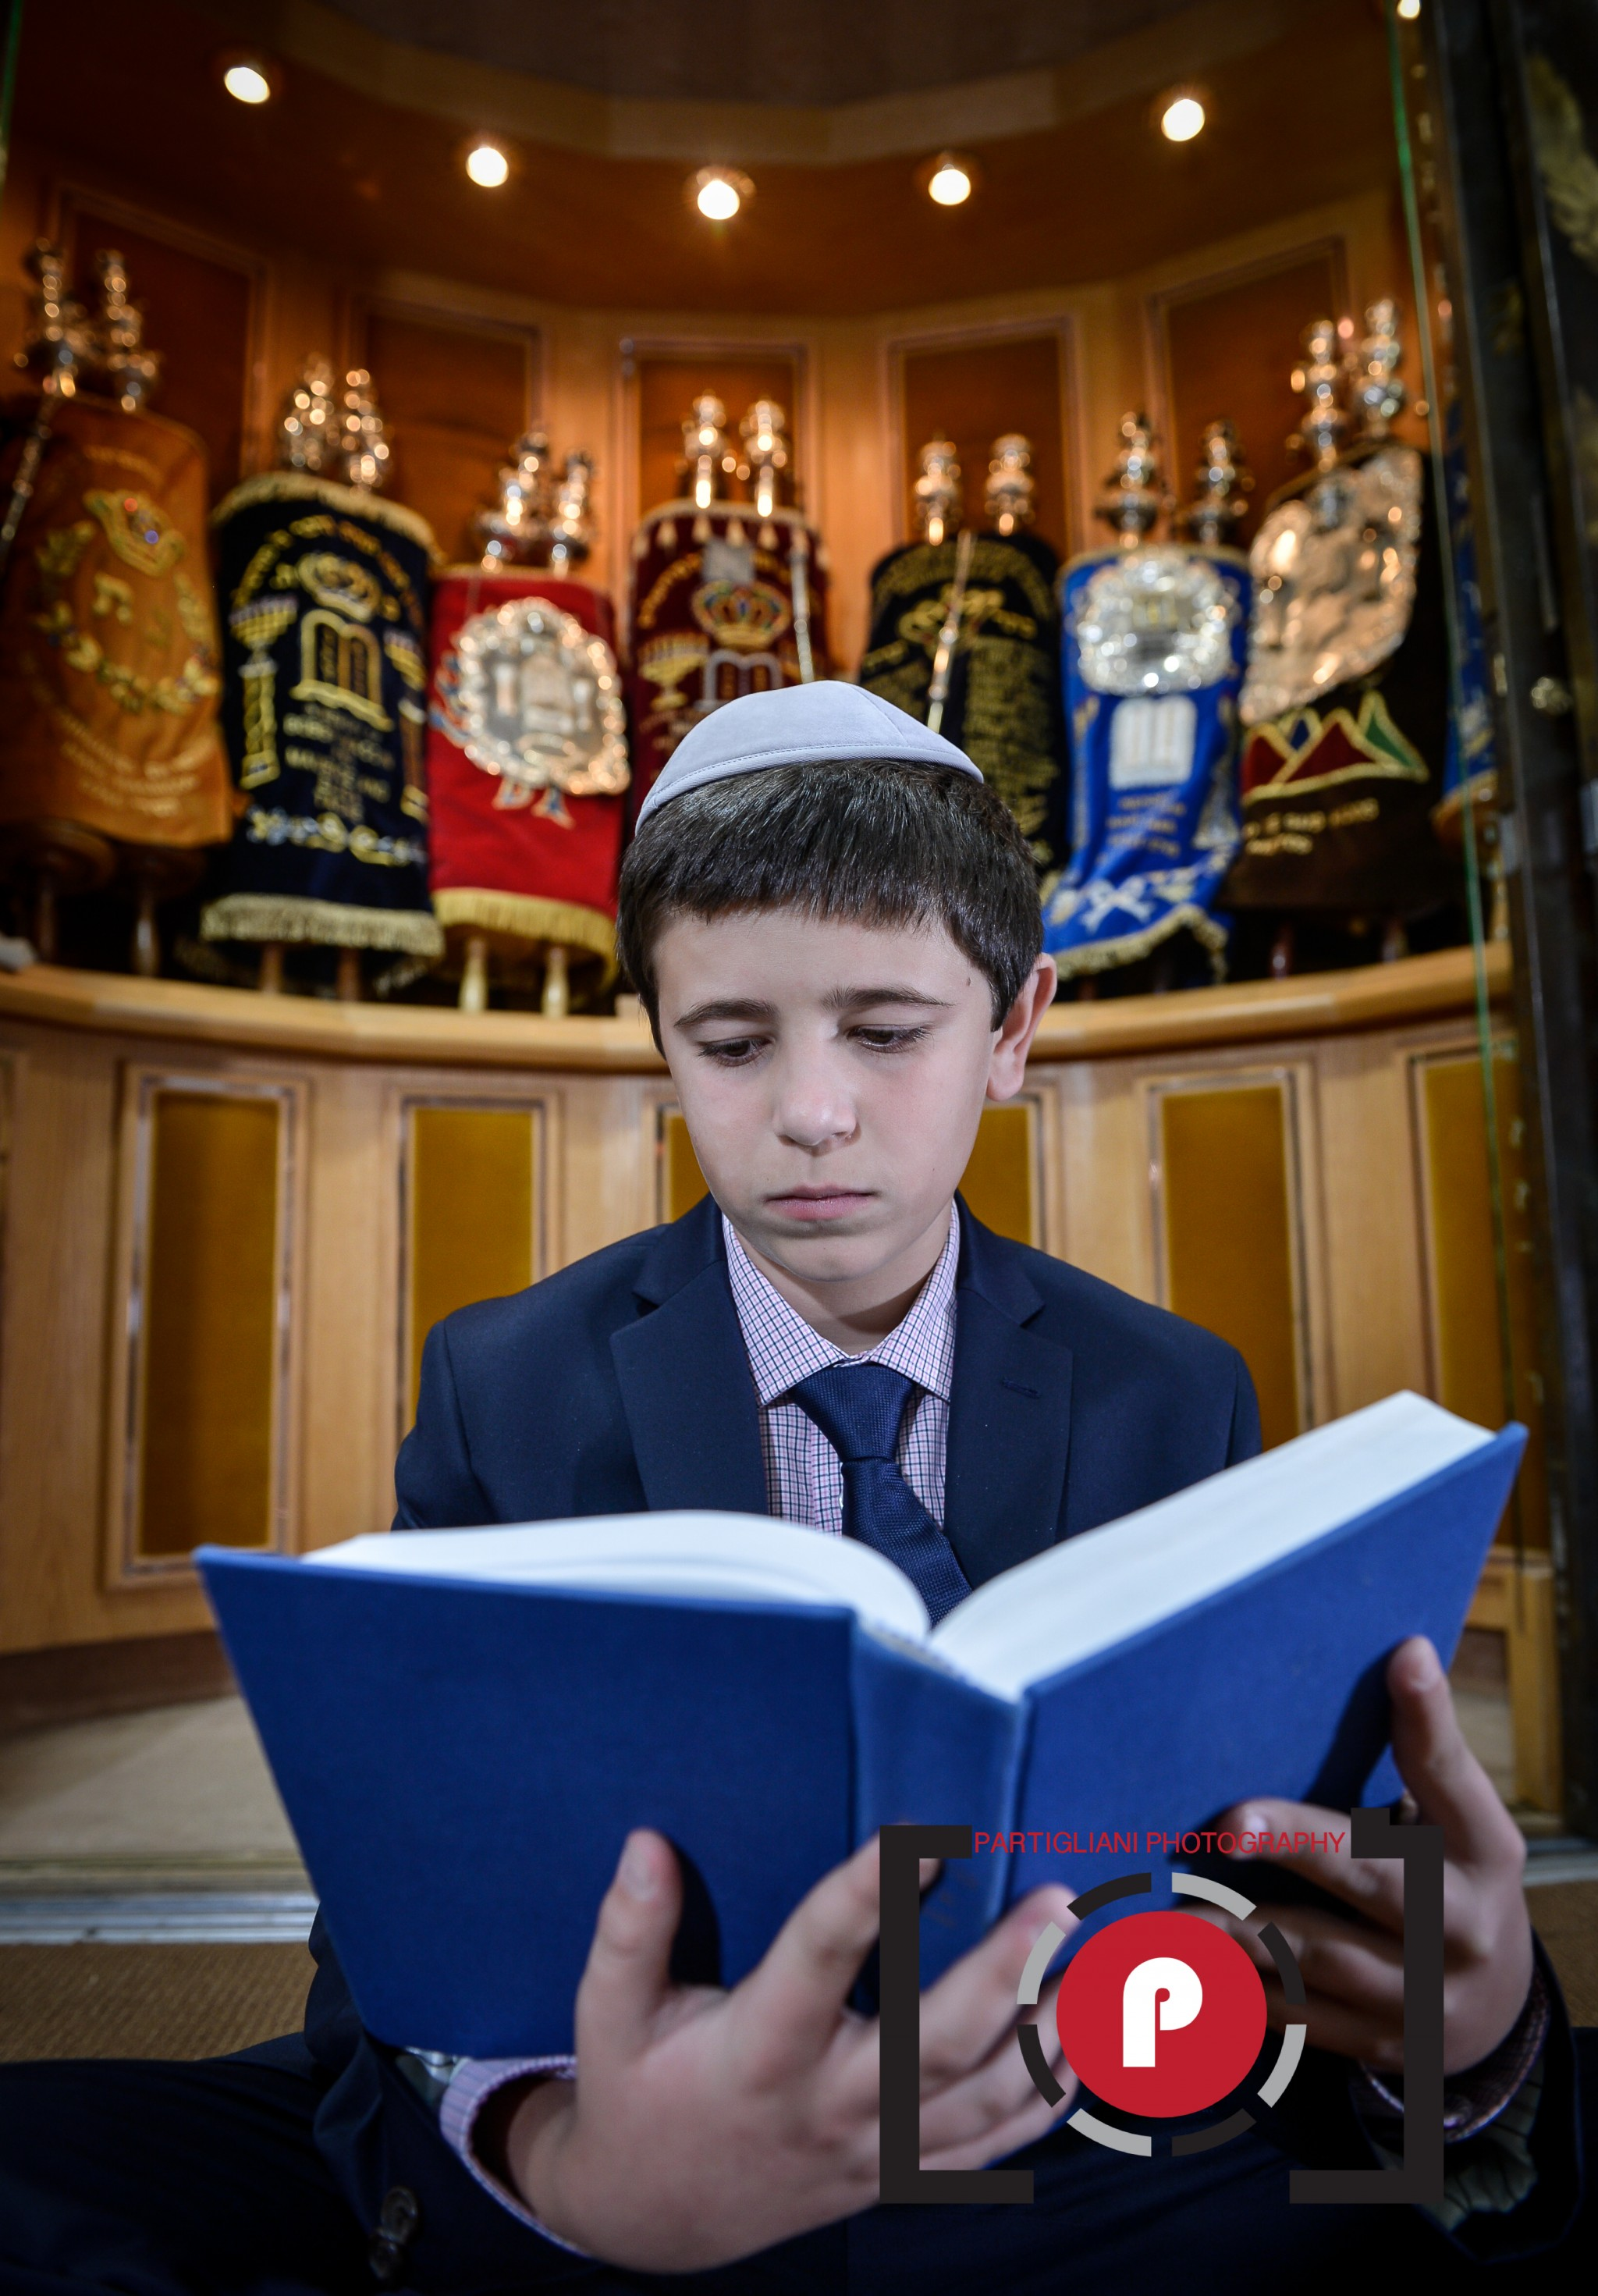 ZACHARY LEMMER BAR MITZVAH, TEMPLE MOSES, MIAMI BEACH